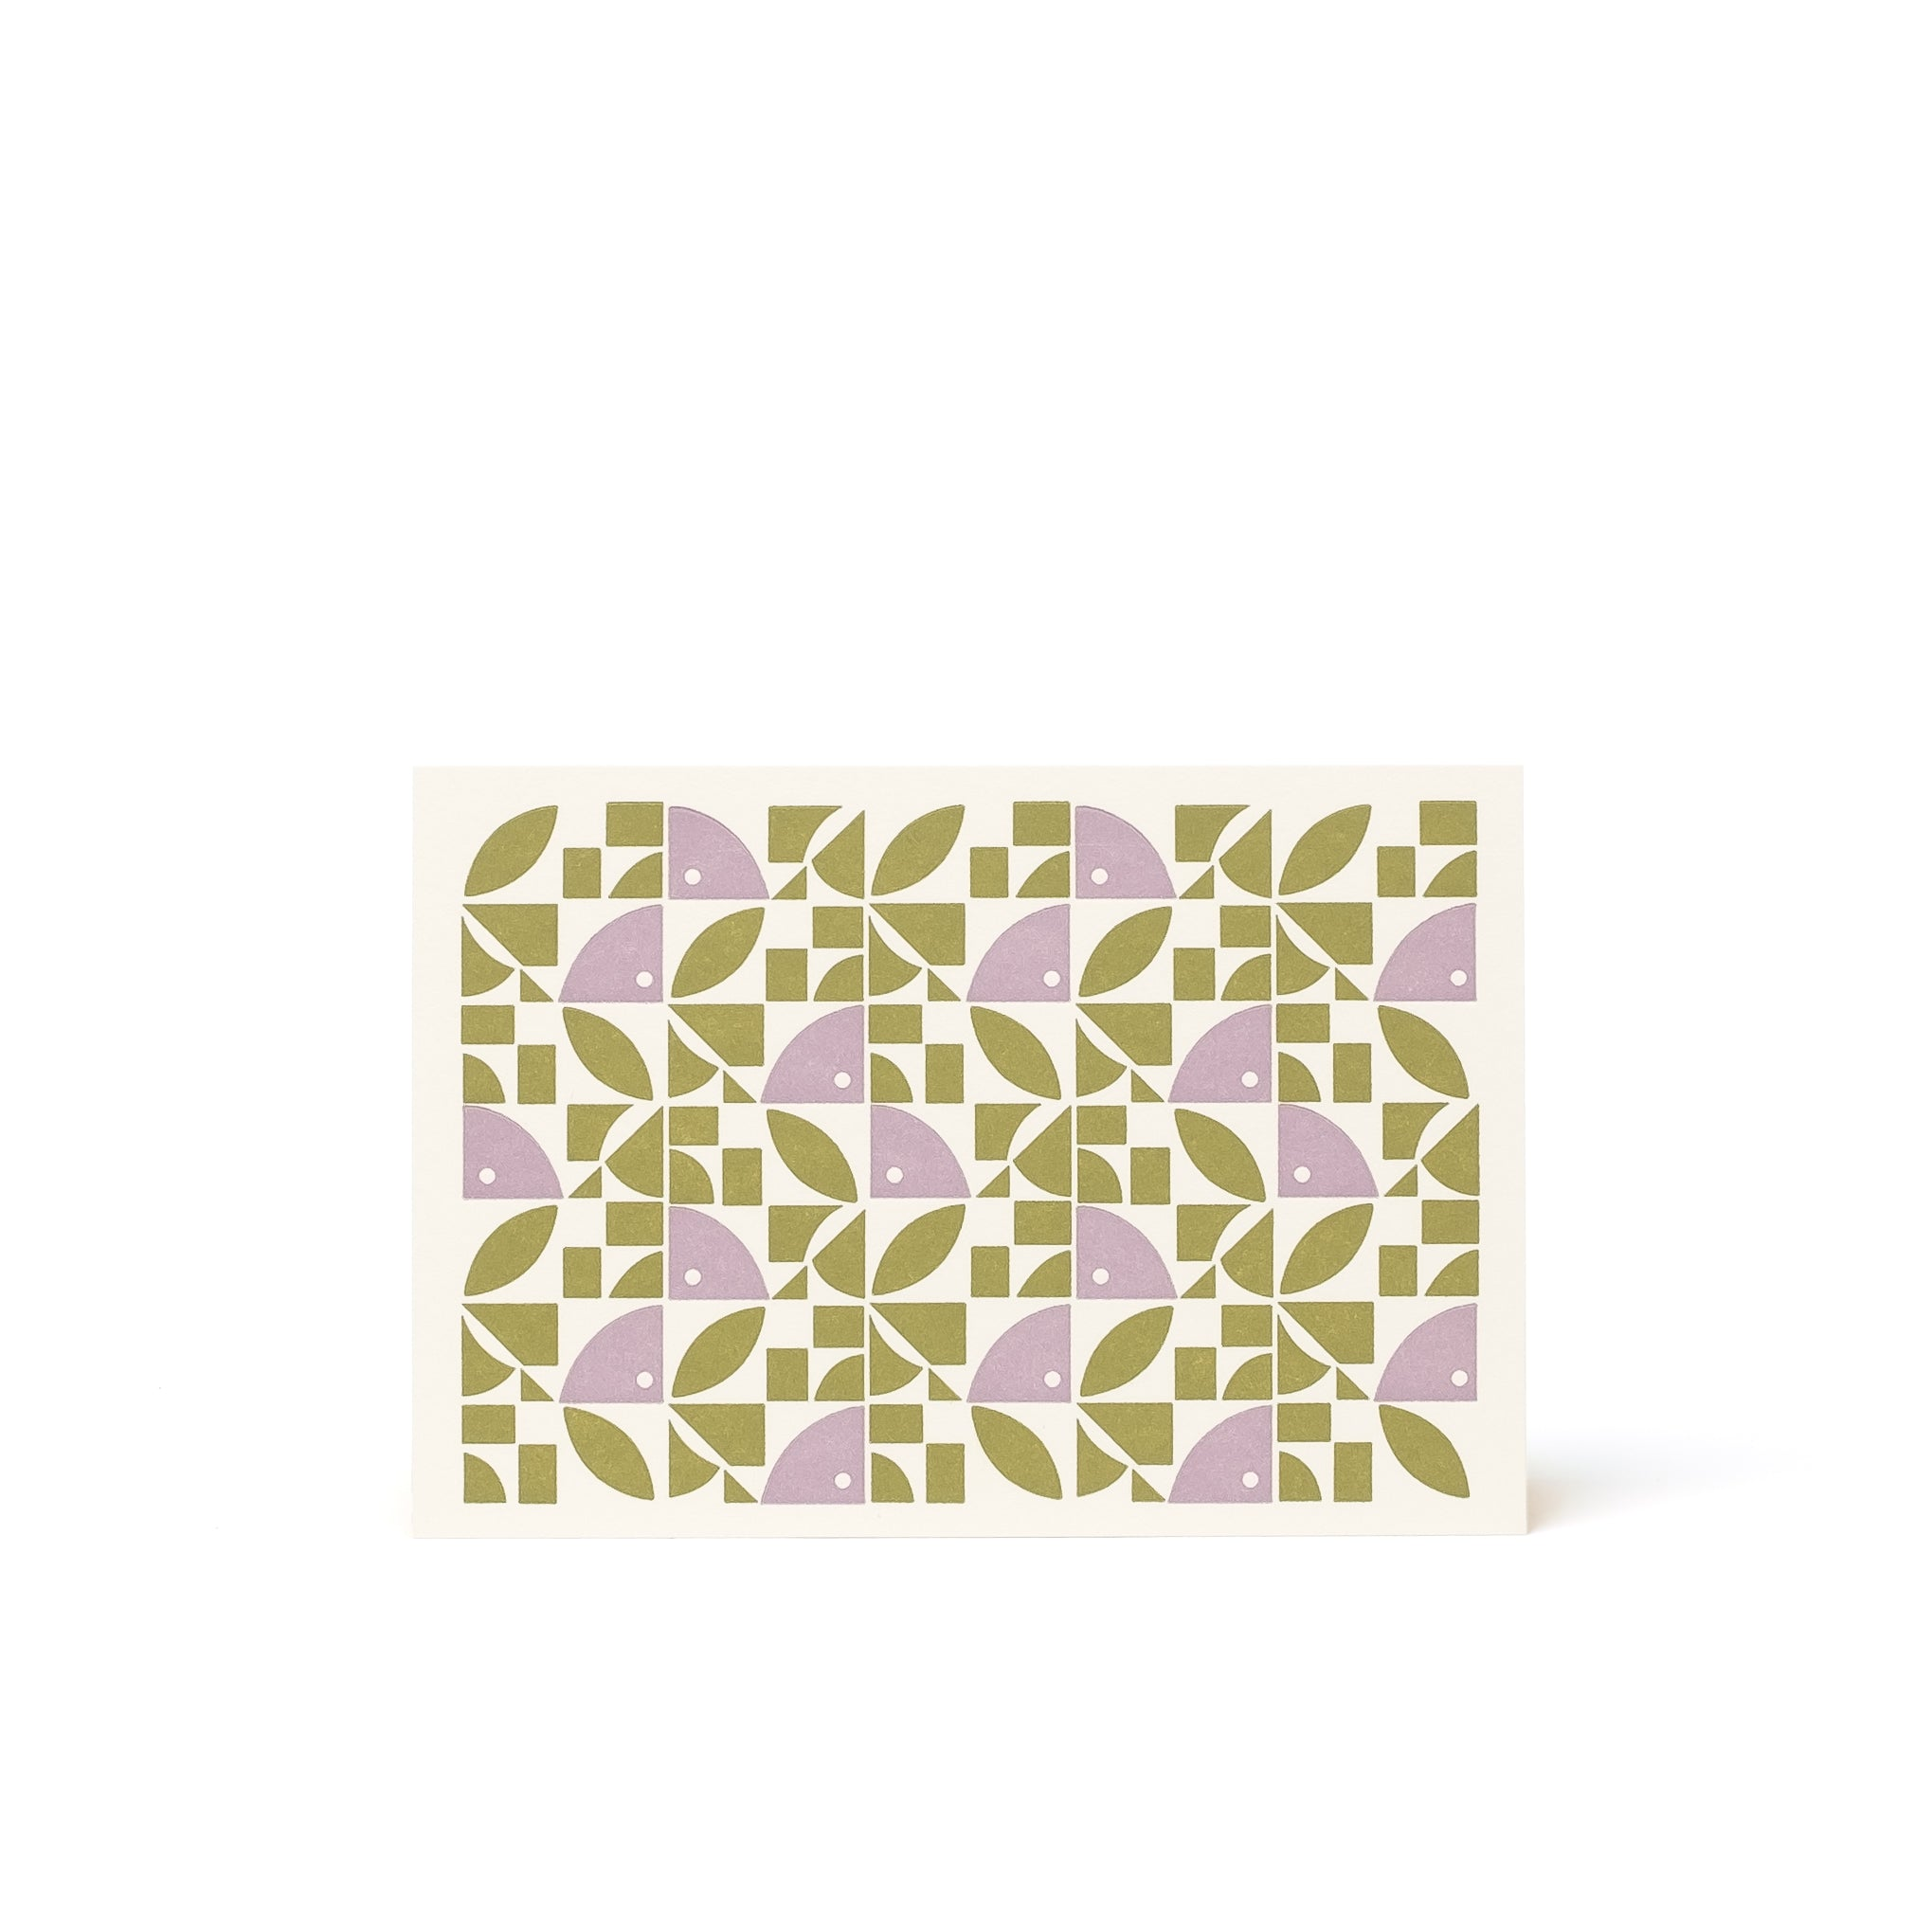 BLOOM Letterpress Card <br>Olive/Mauve - Esme Winter